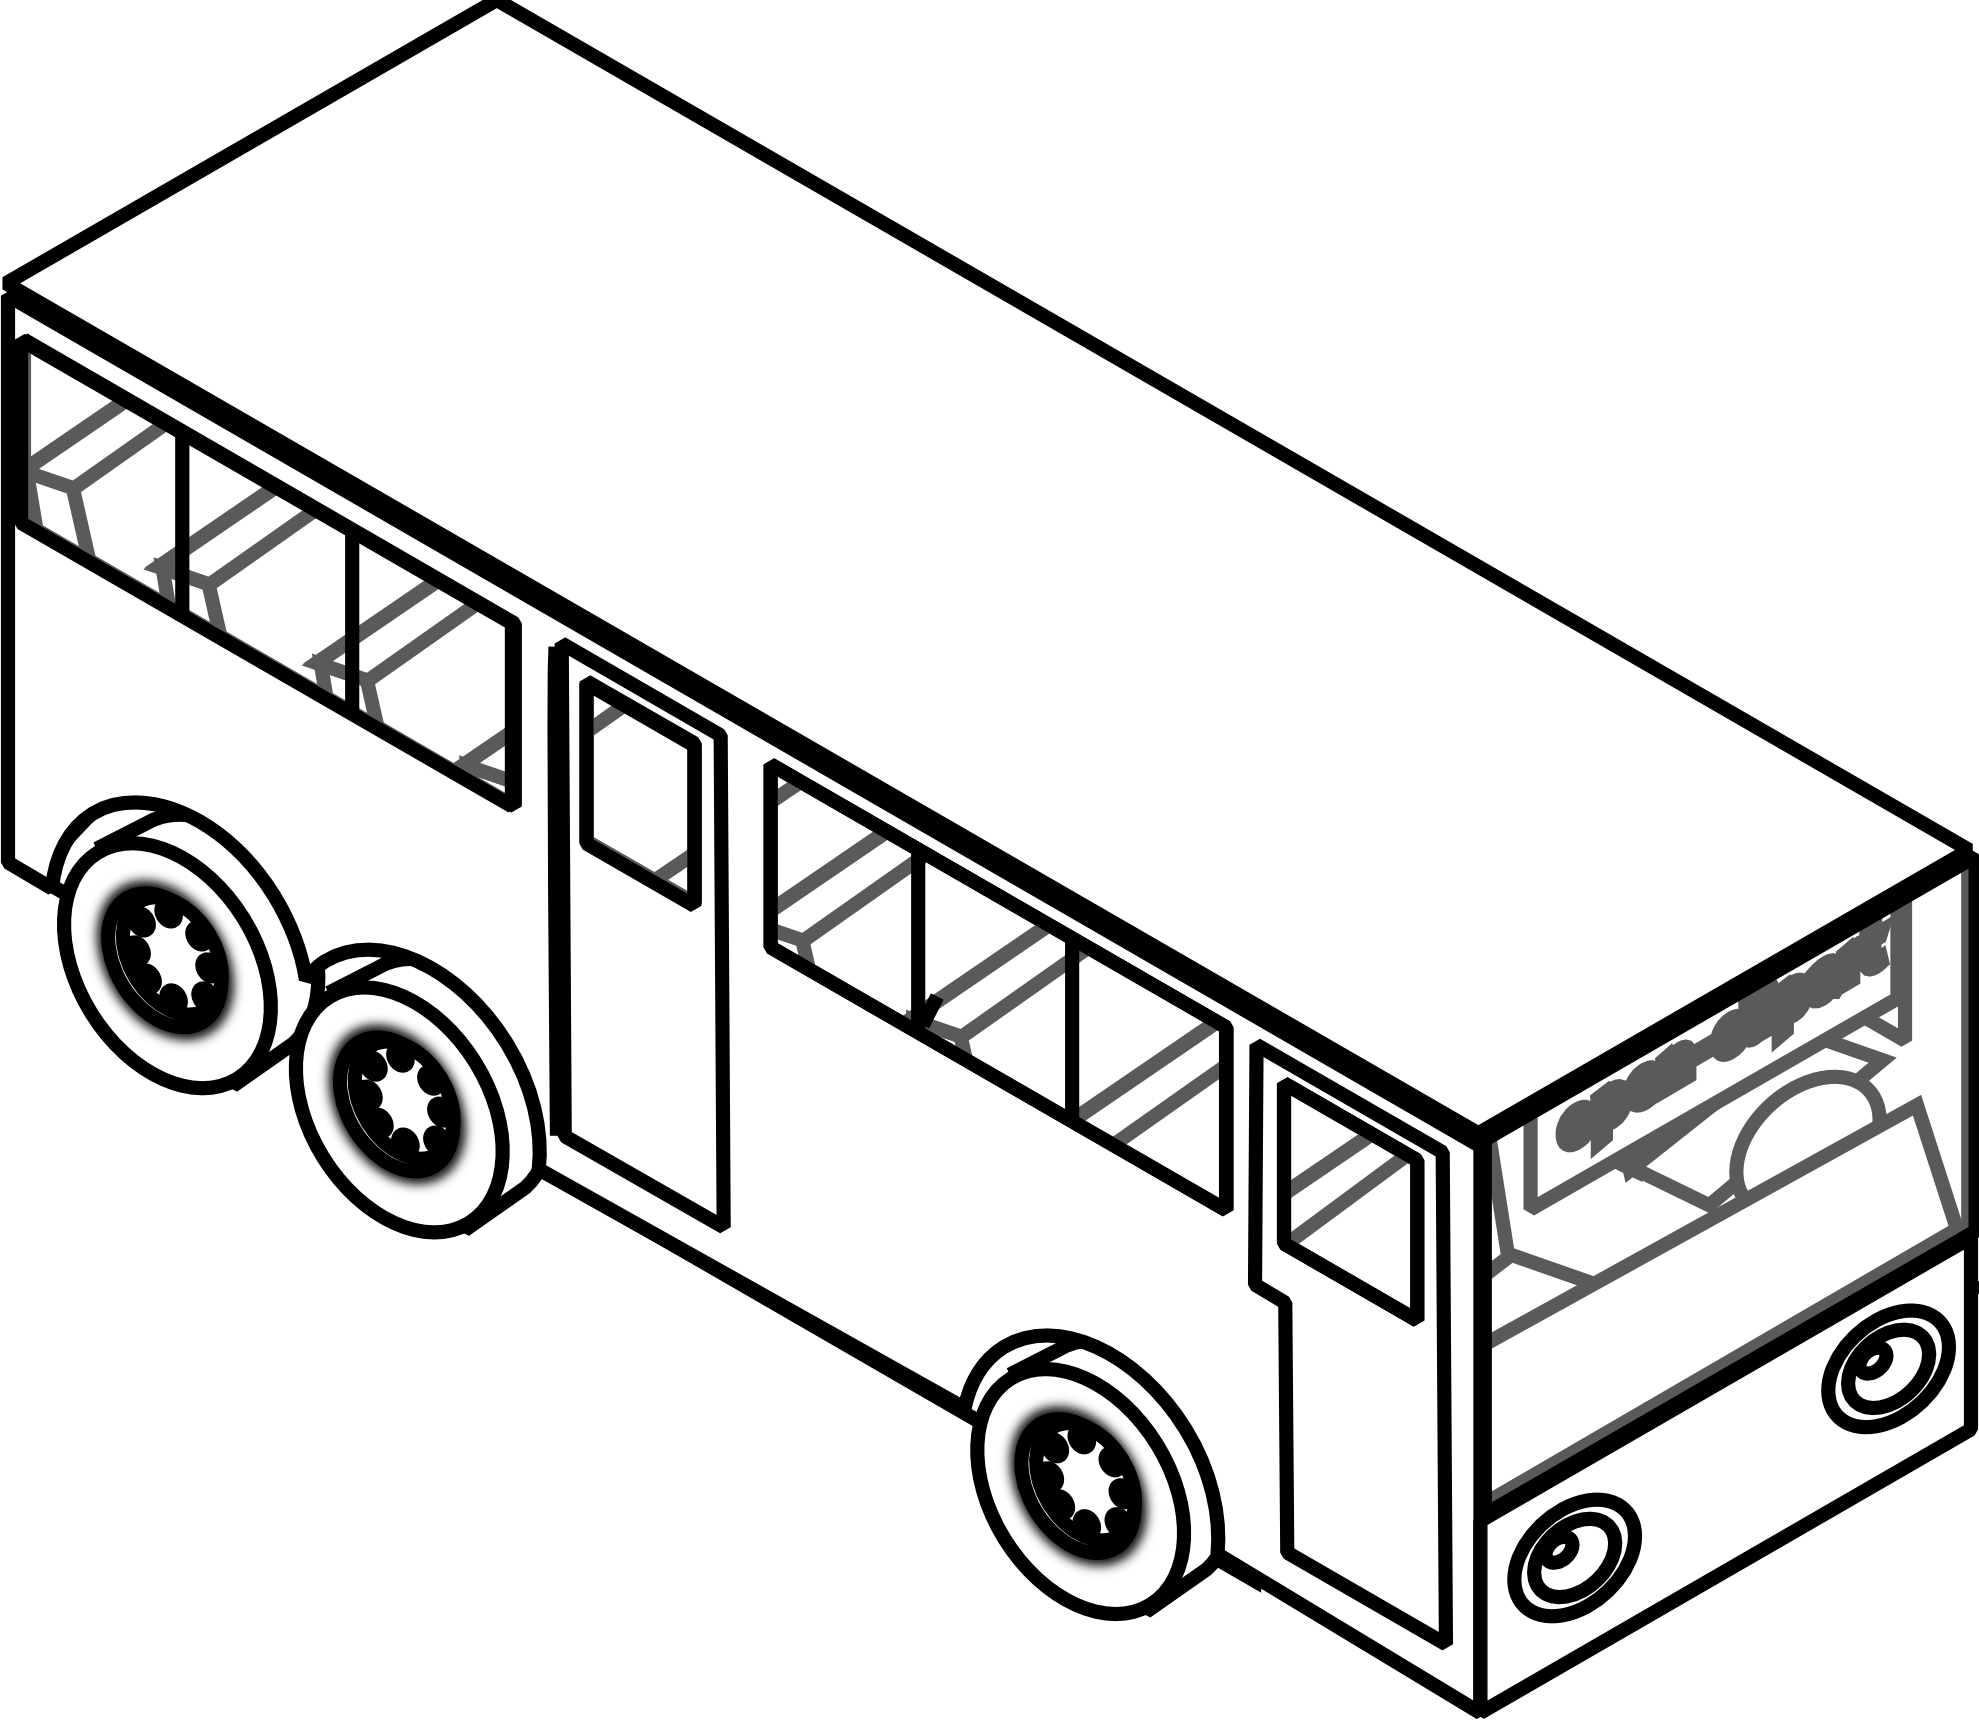 Drawing bus. Images at getdrawings com